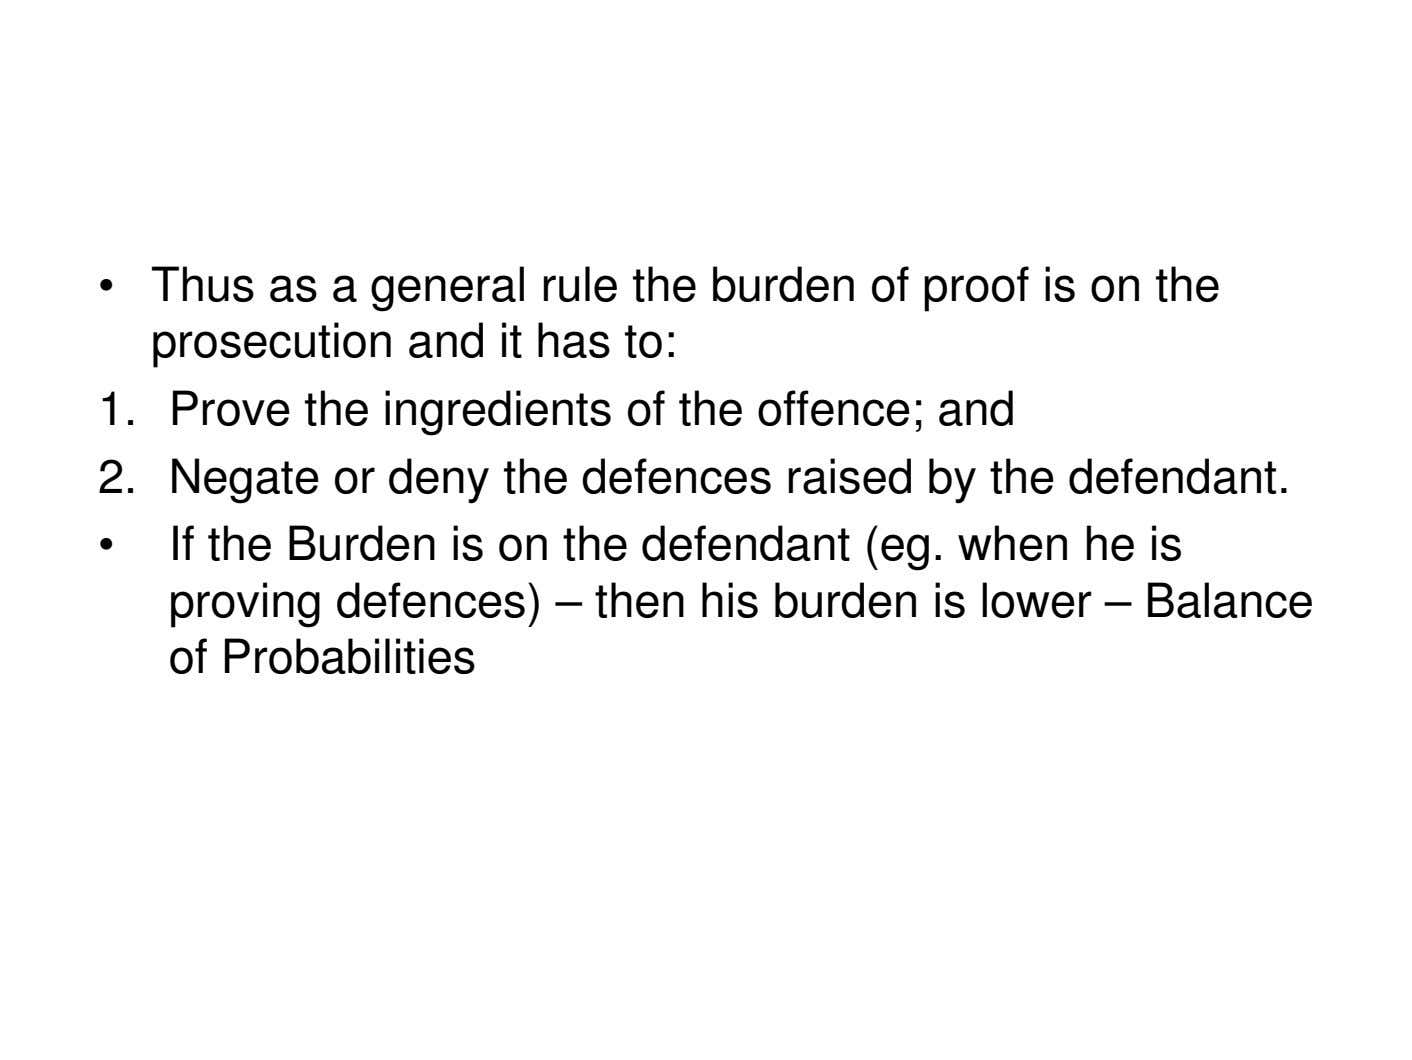 • Thus as a general rule the burden of proof is on the prosecution and